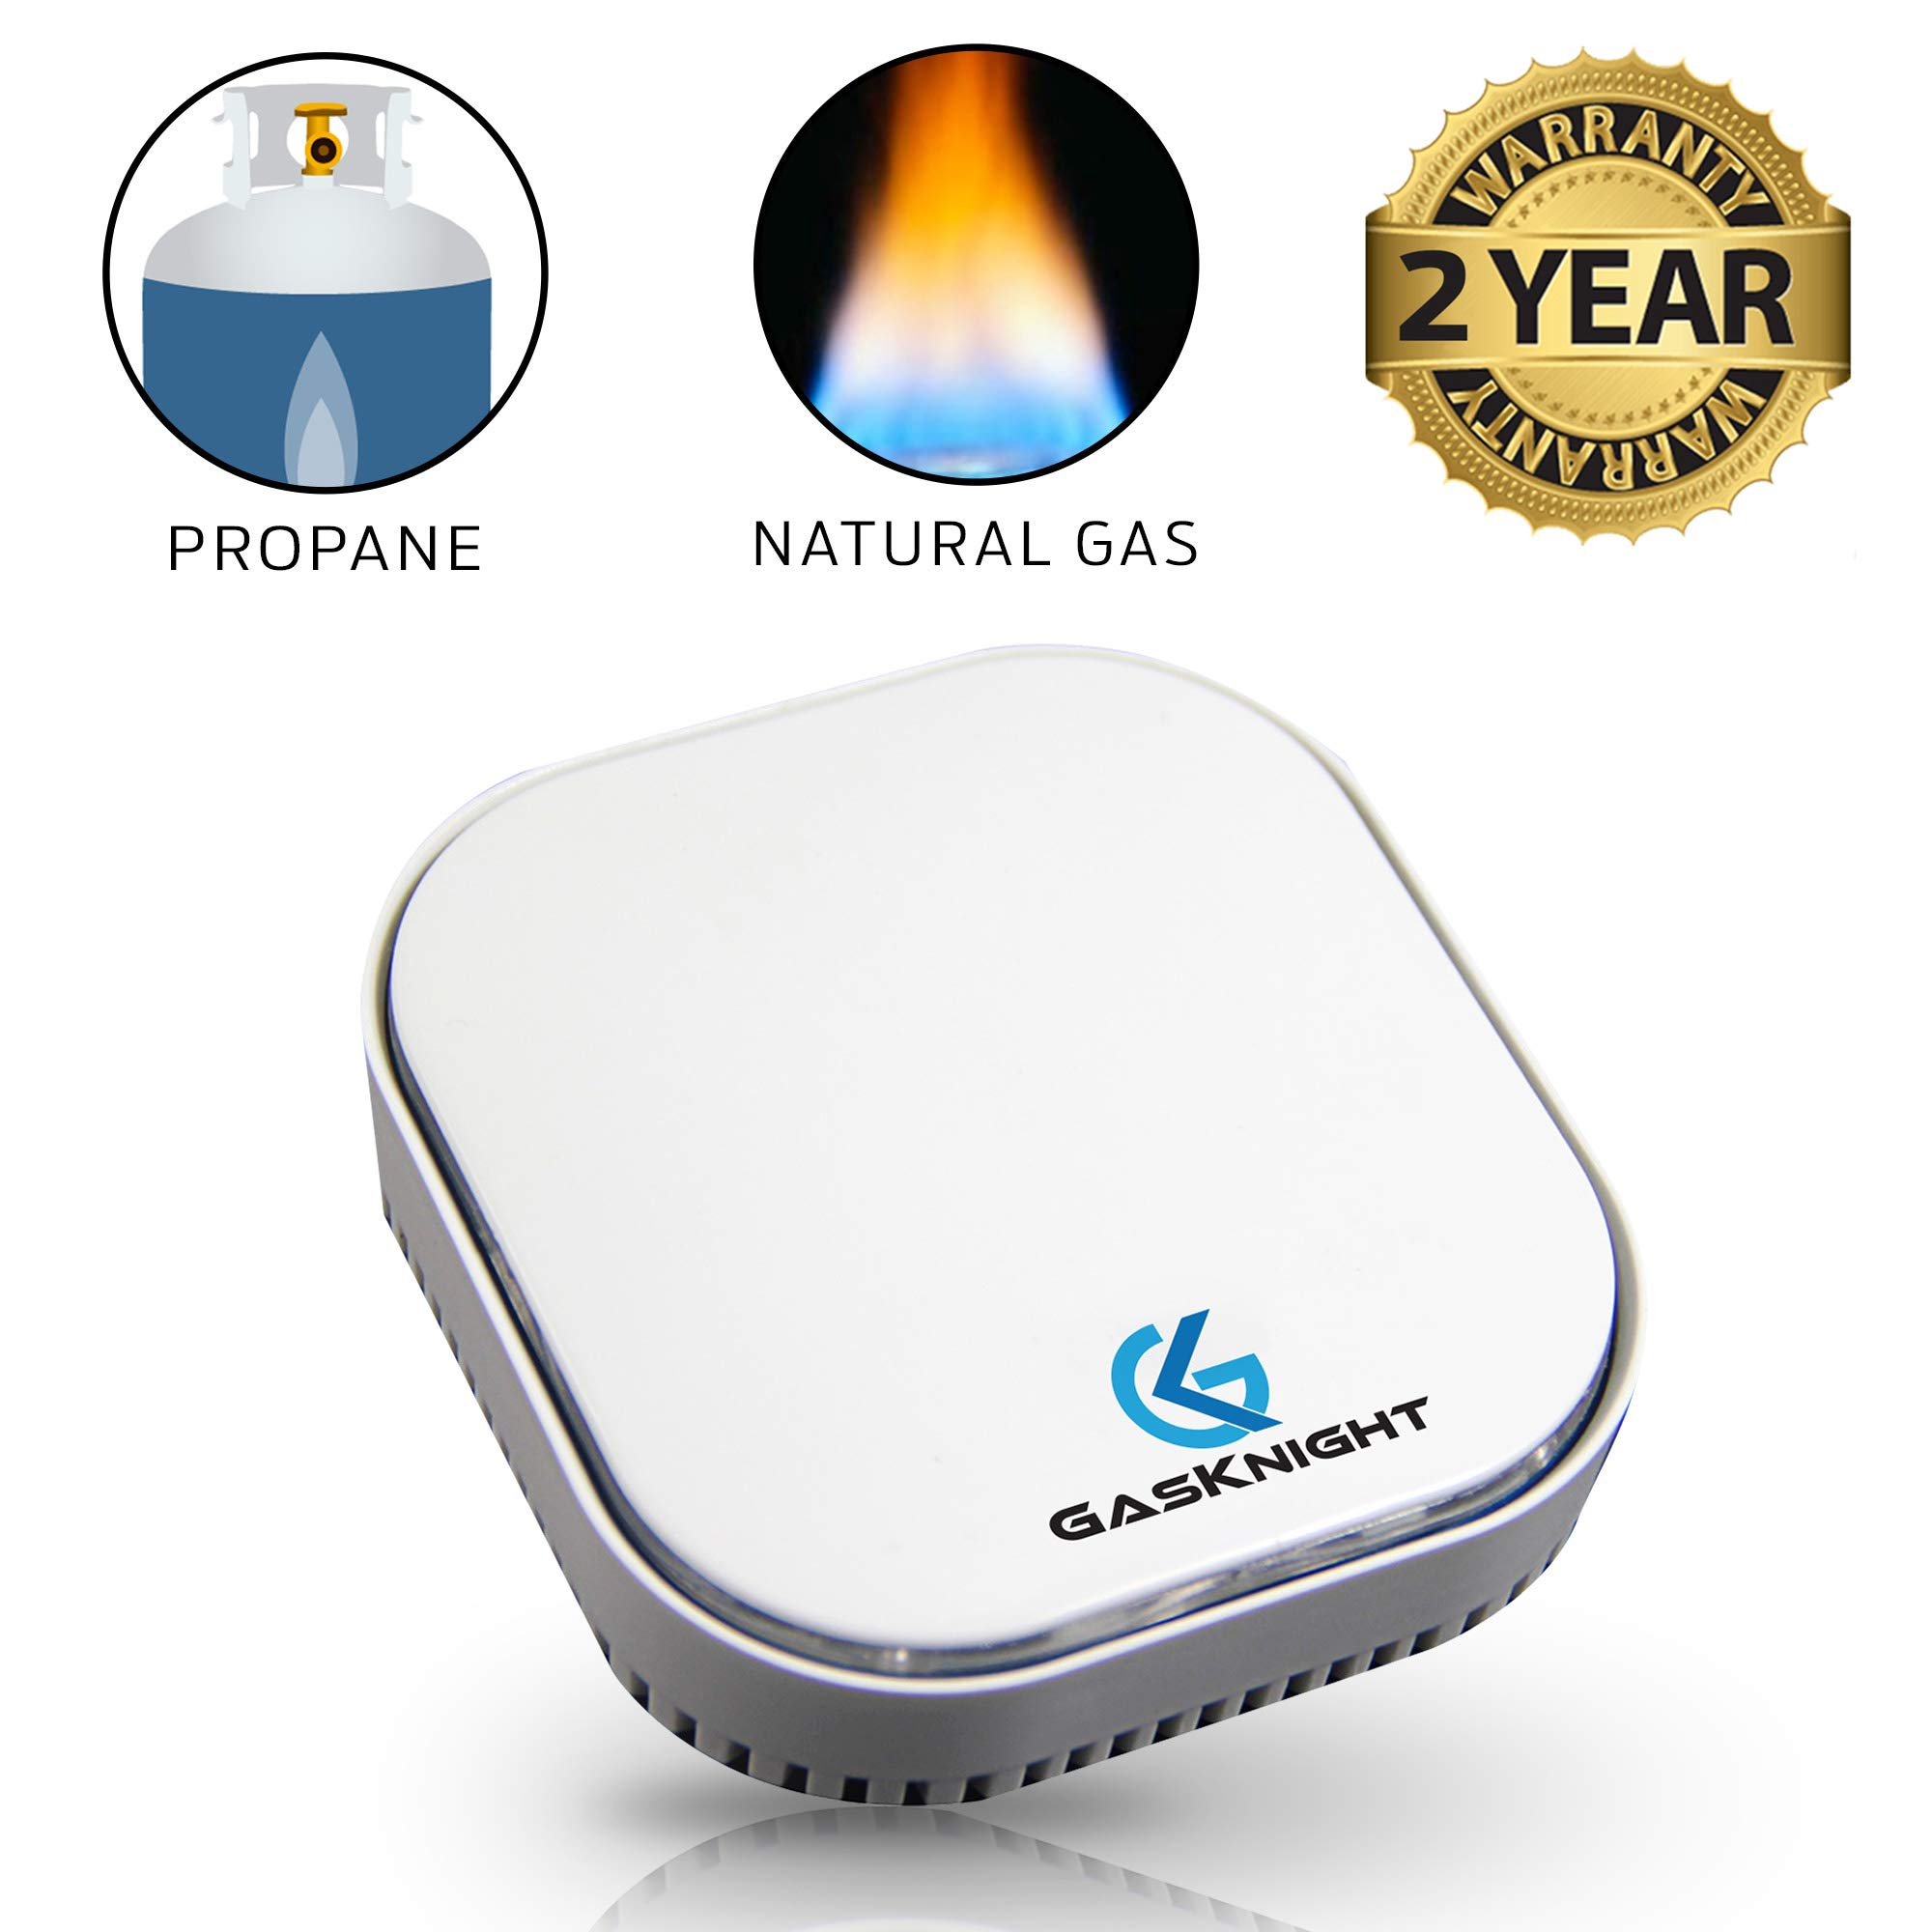 Natural Gas Detector & Propane Detector. Natural Gas Alarm and Monitor for Home, Kitchen, Camper, Trailer or RV. Plug-In Gas Leak Sensor for Explosive LPG, LNG, Methane & Butane Gases with FREE EBOOK! by GasKnight